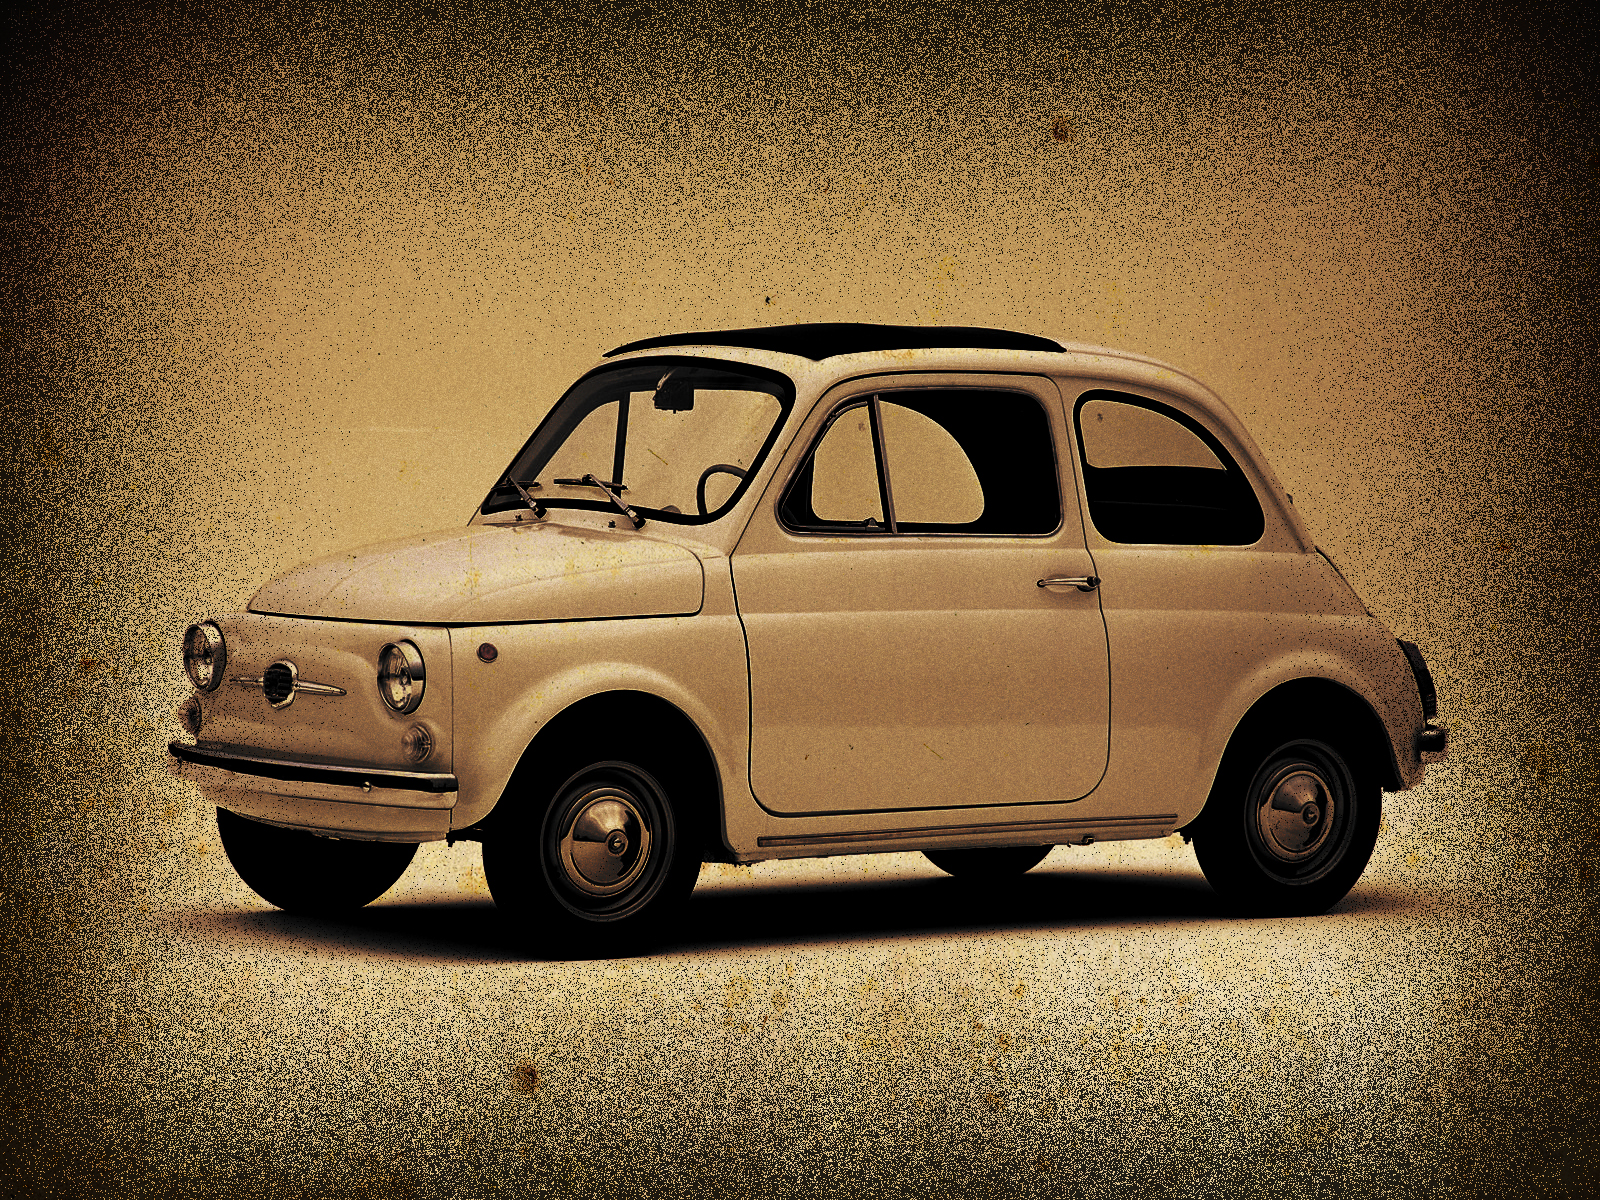 fiat 500 old style by locoarts92 on deviantart. Black Bedroom Furniture Sets. Home Design Ideas